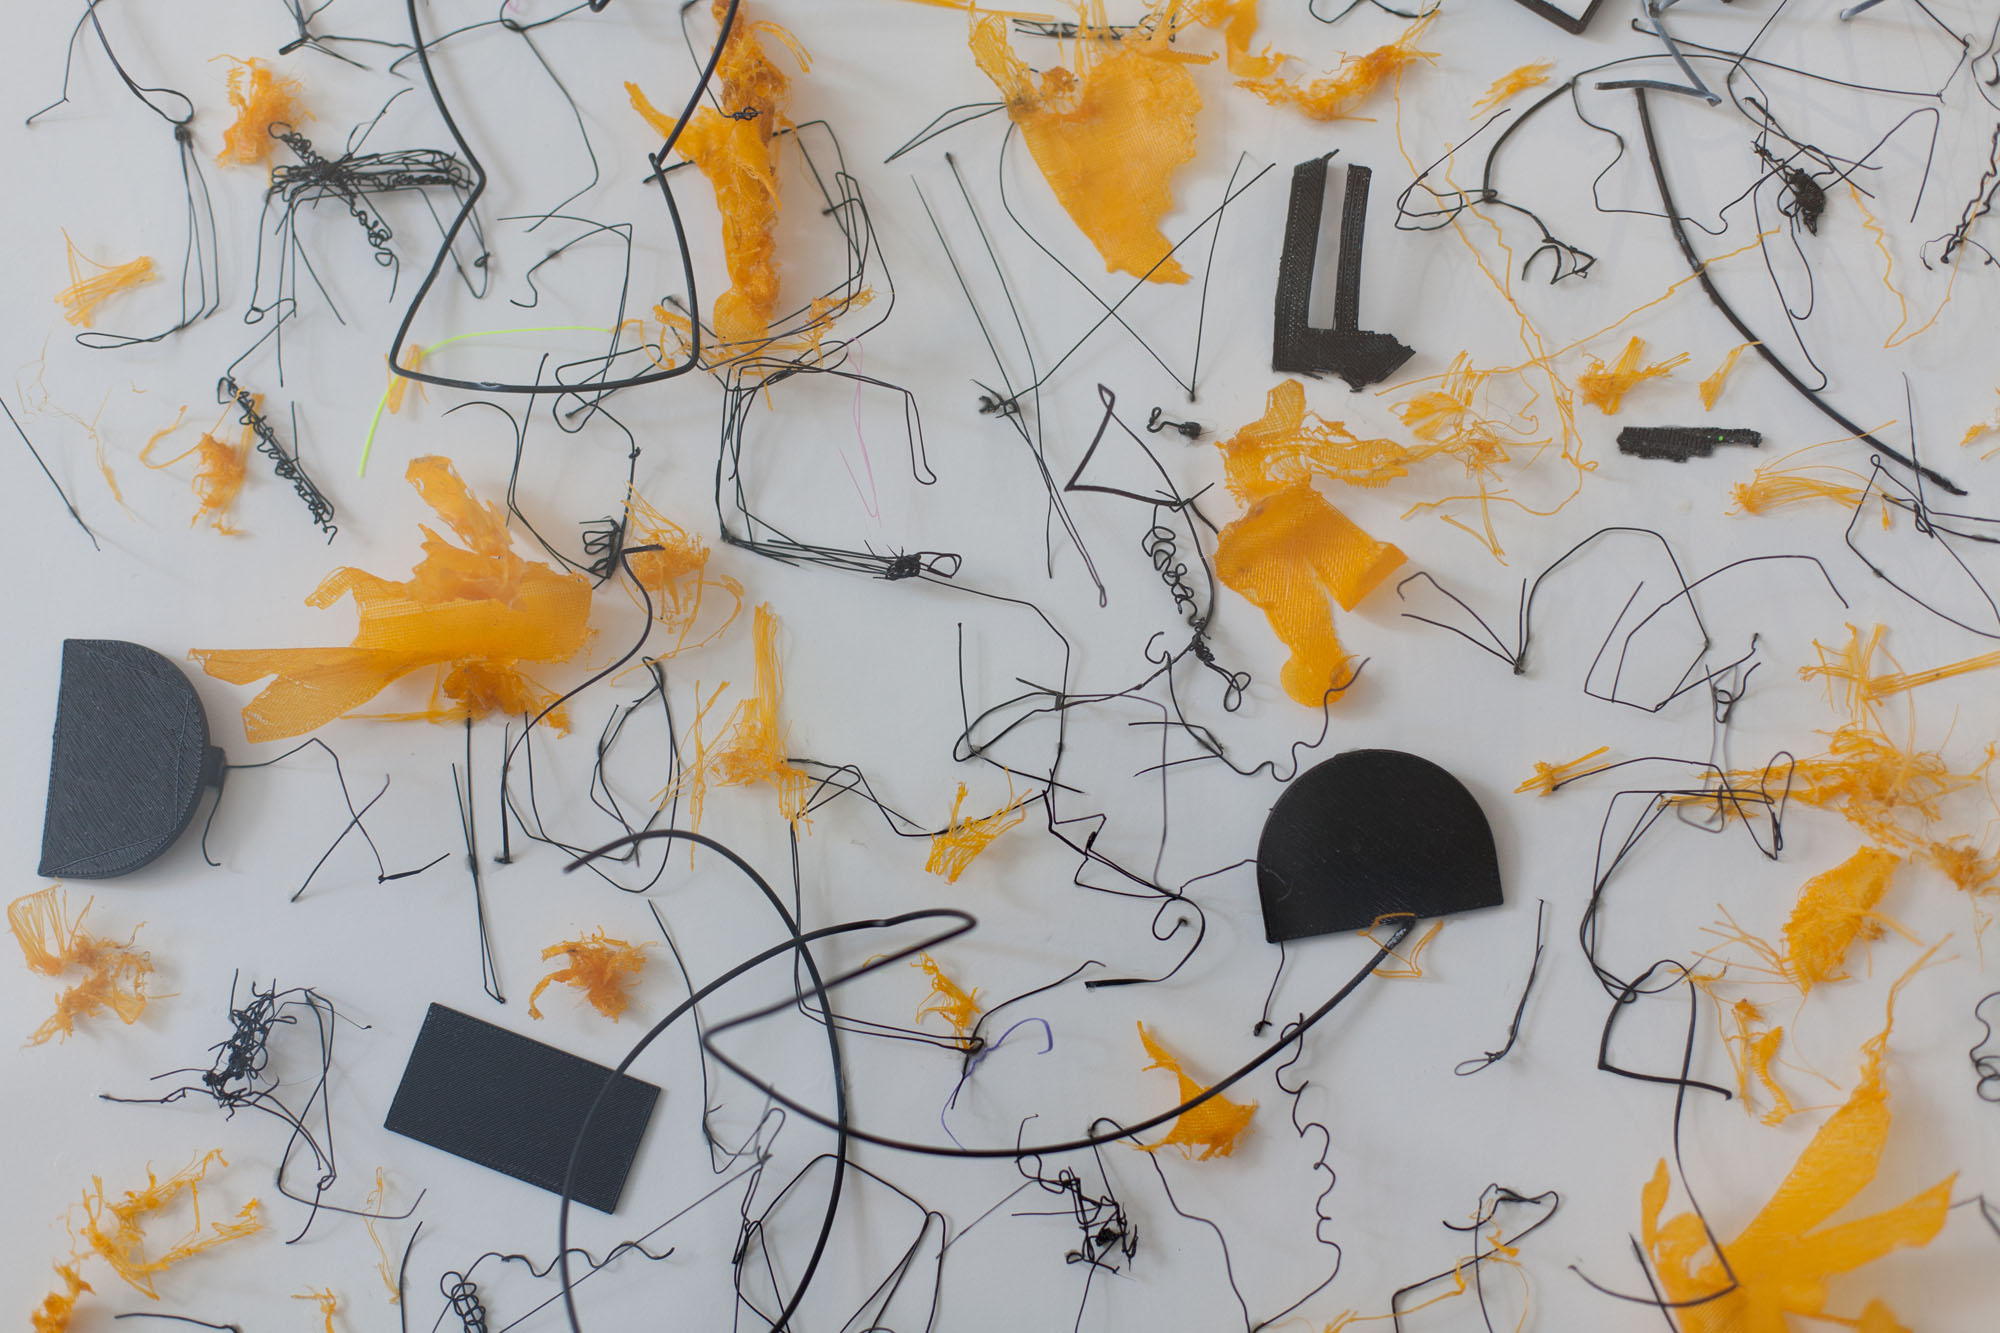 Tina Douglas, harsh 2019, 3D printed plastic errors on ragboard, 60 x 55 x 6 cm with acrylic box (detail)